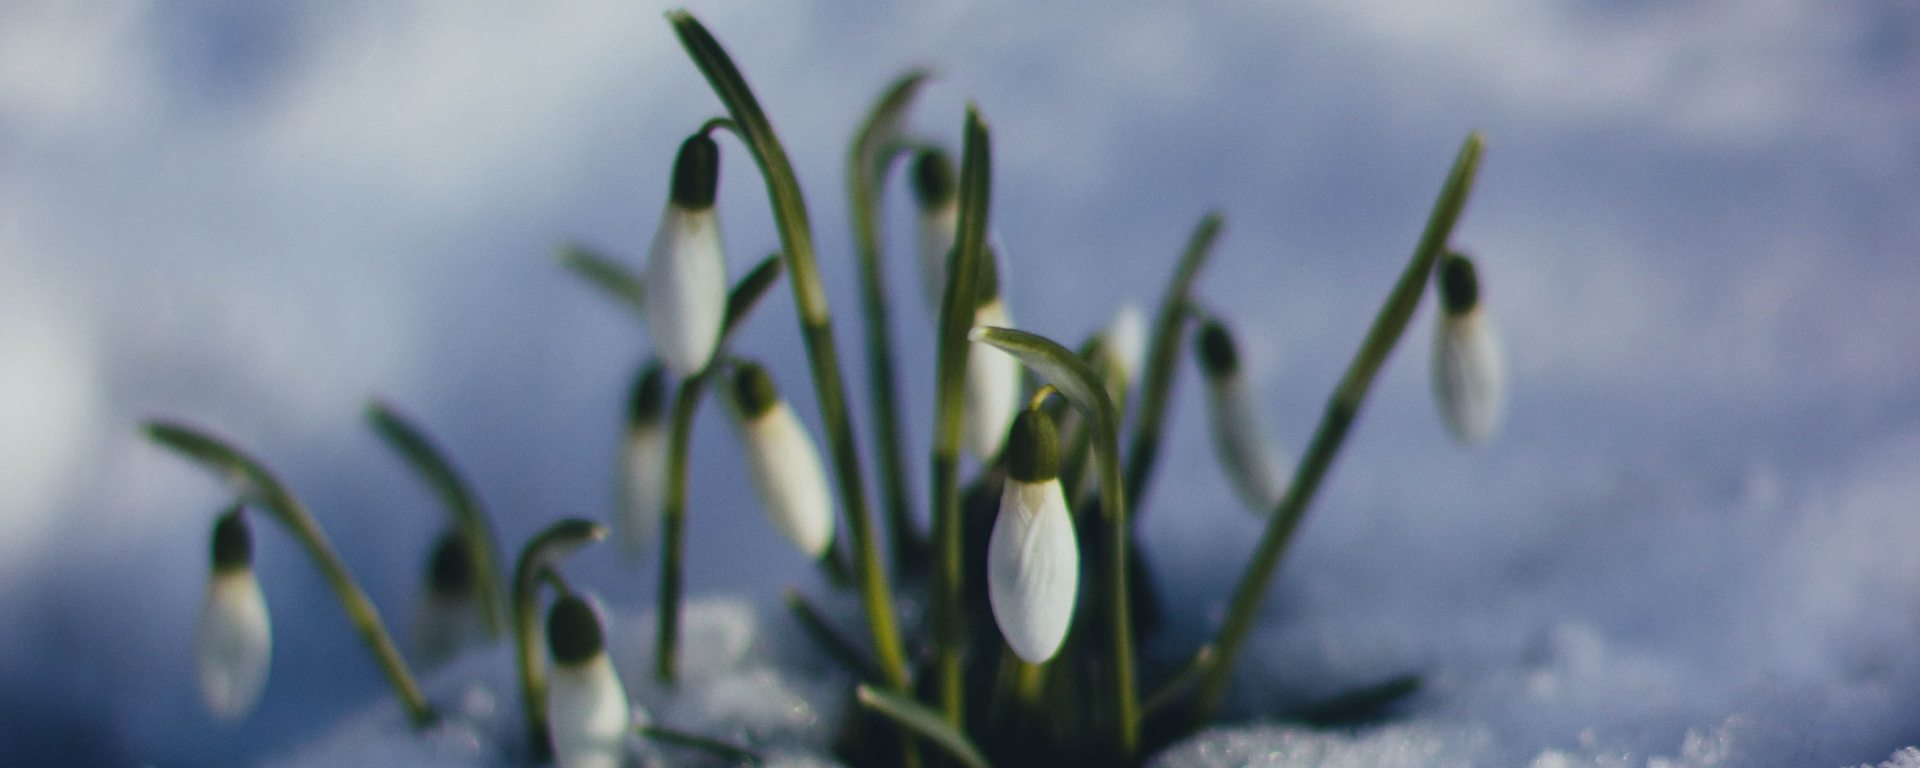 Flower buds sprout from snowy ground.